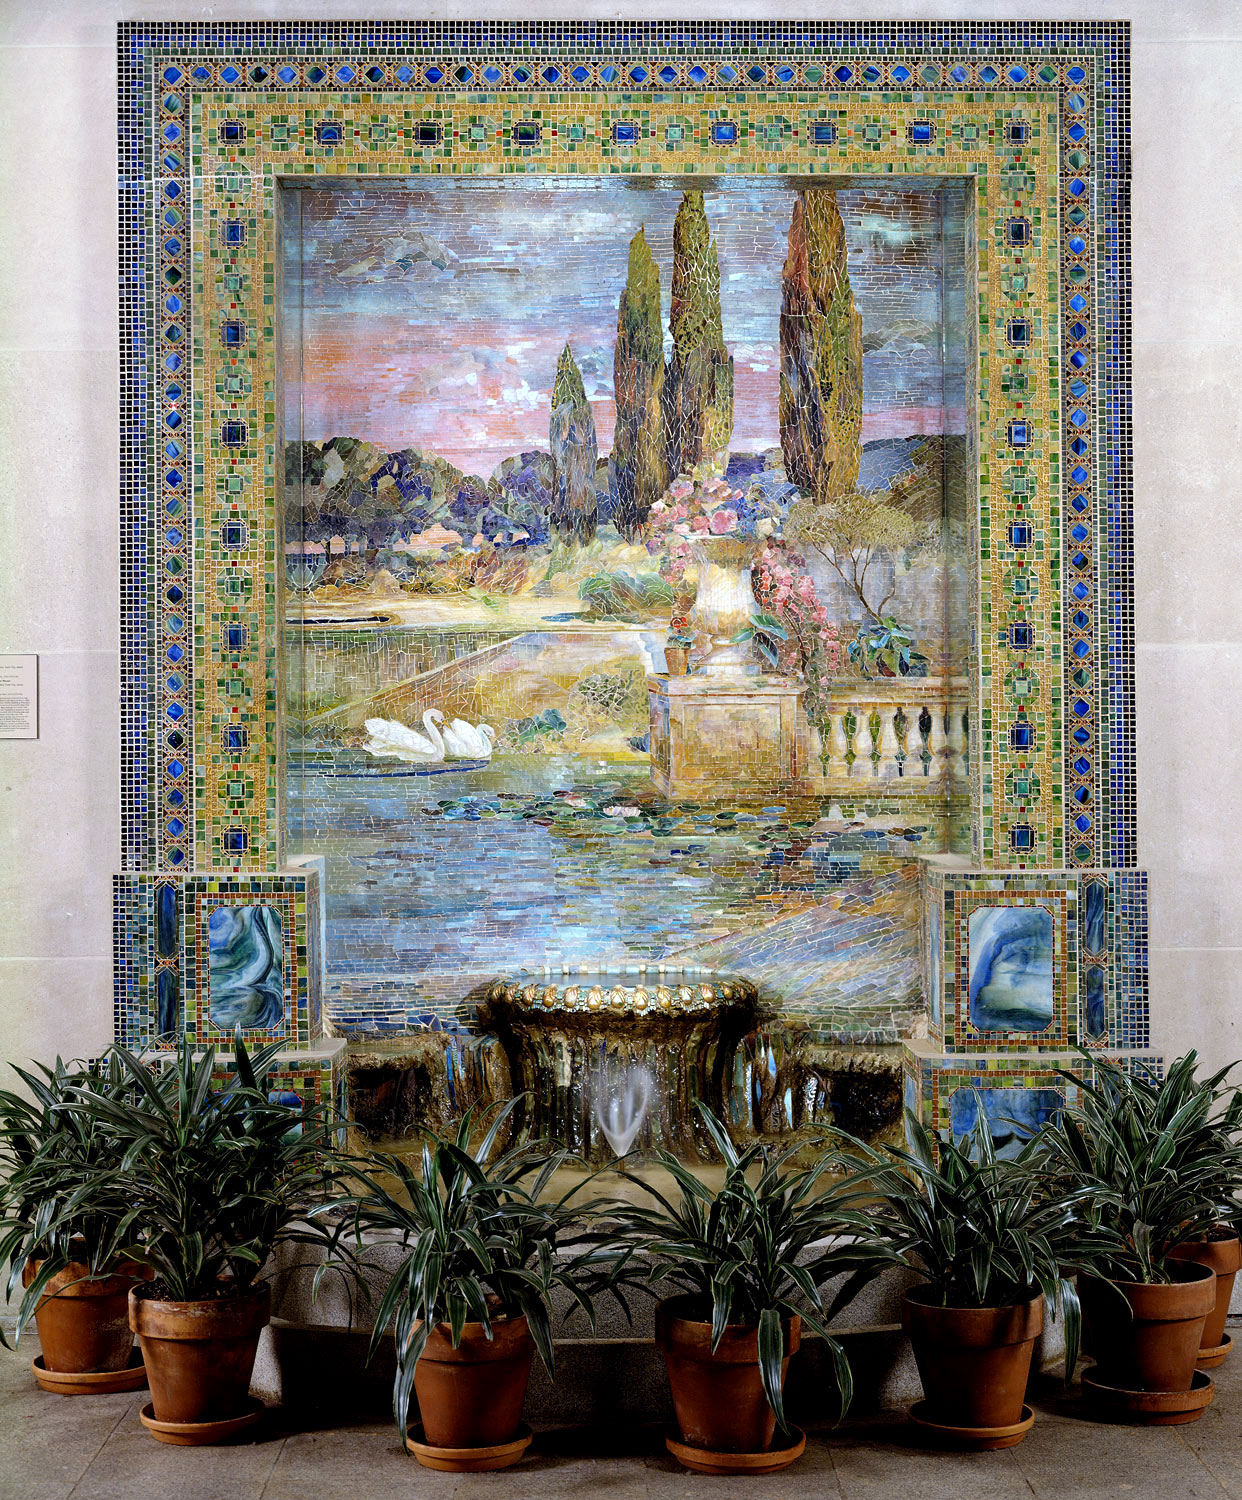 Tiffany mosaic fountain, contribution of Lillian Nassau